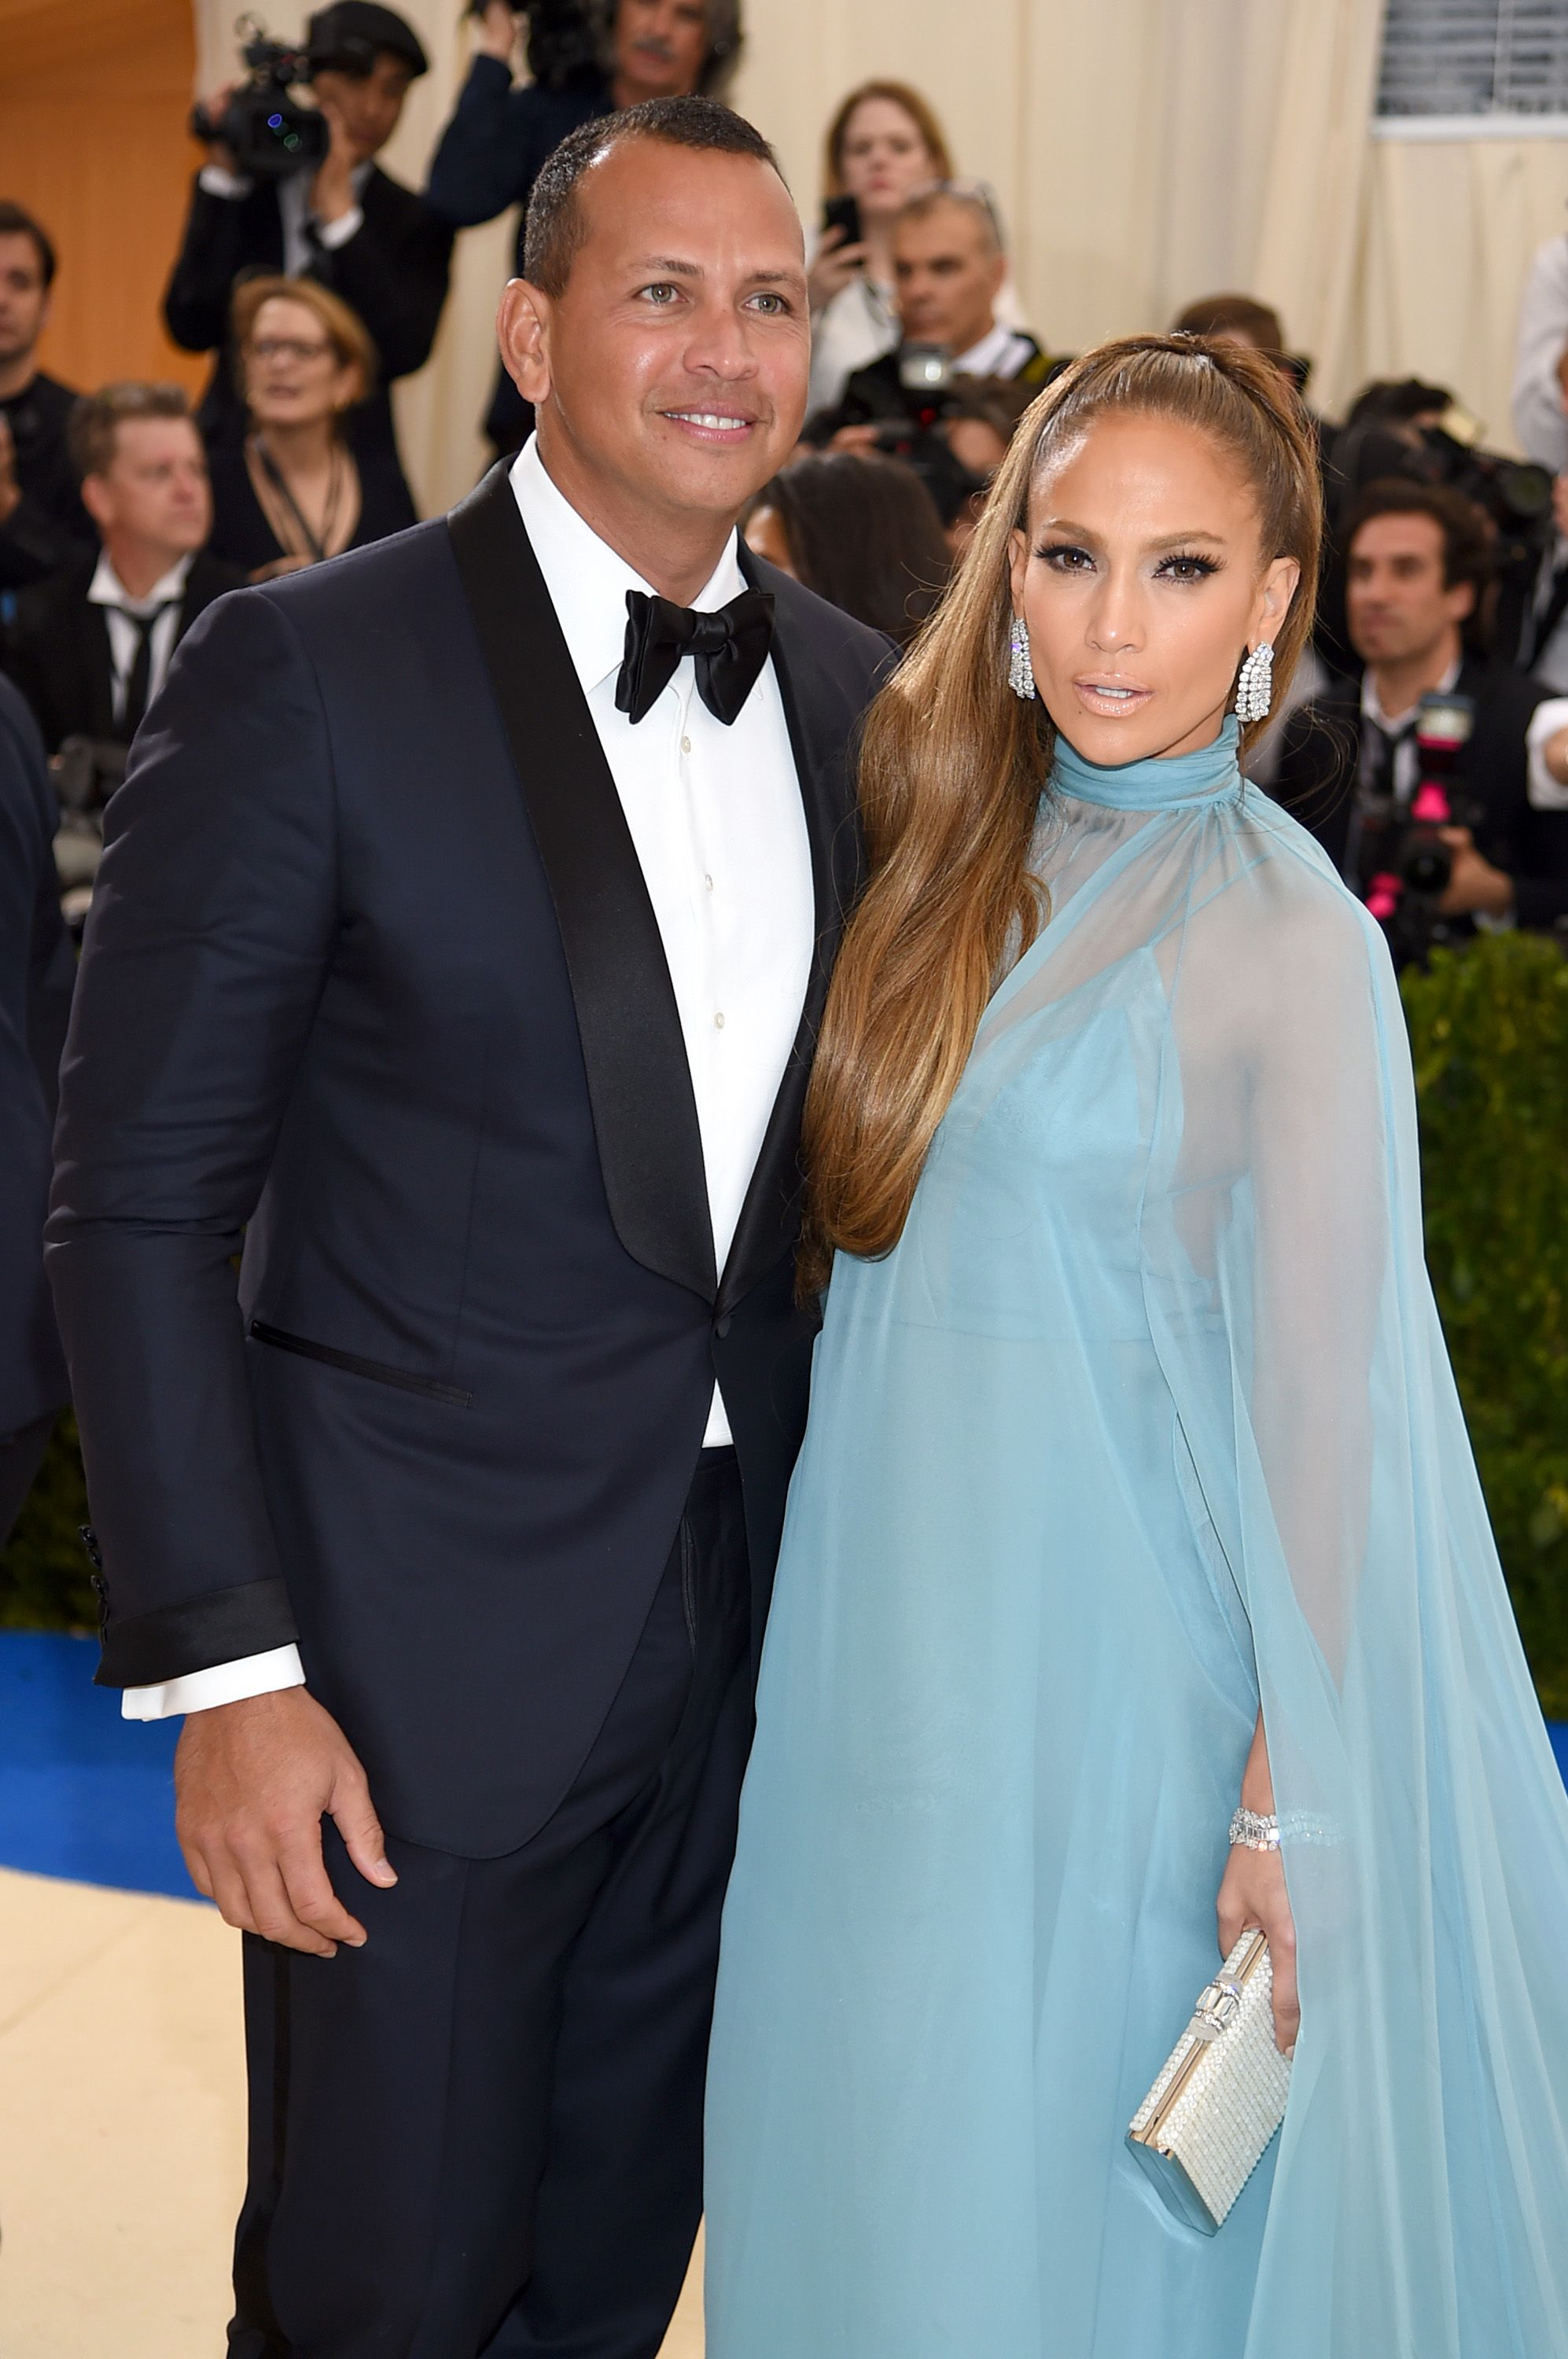 Jennifer Lopez and Alex Rodriguez Had a Double Date With Meghan Markle and Prince Harry